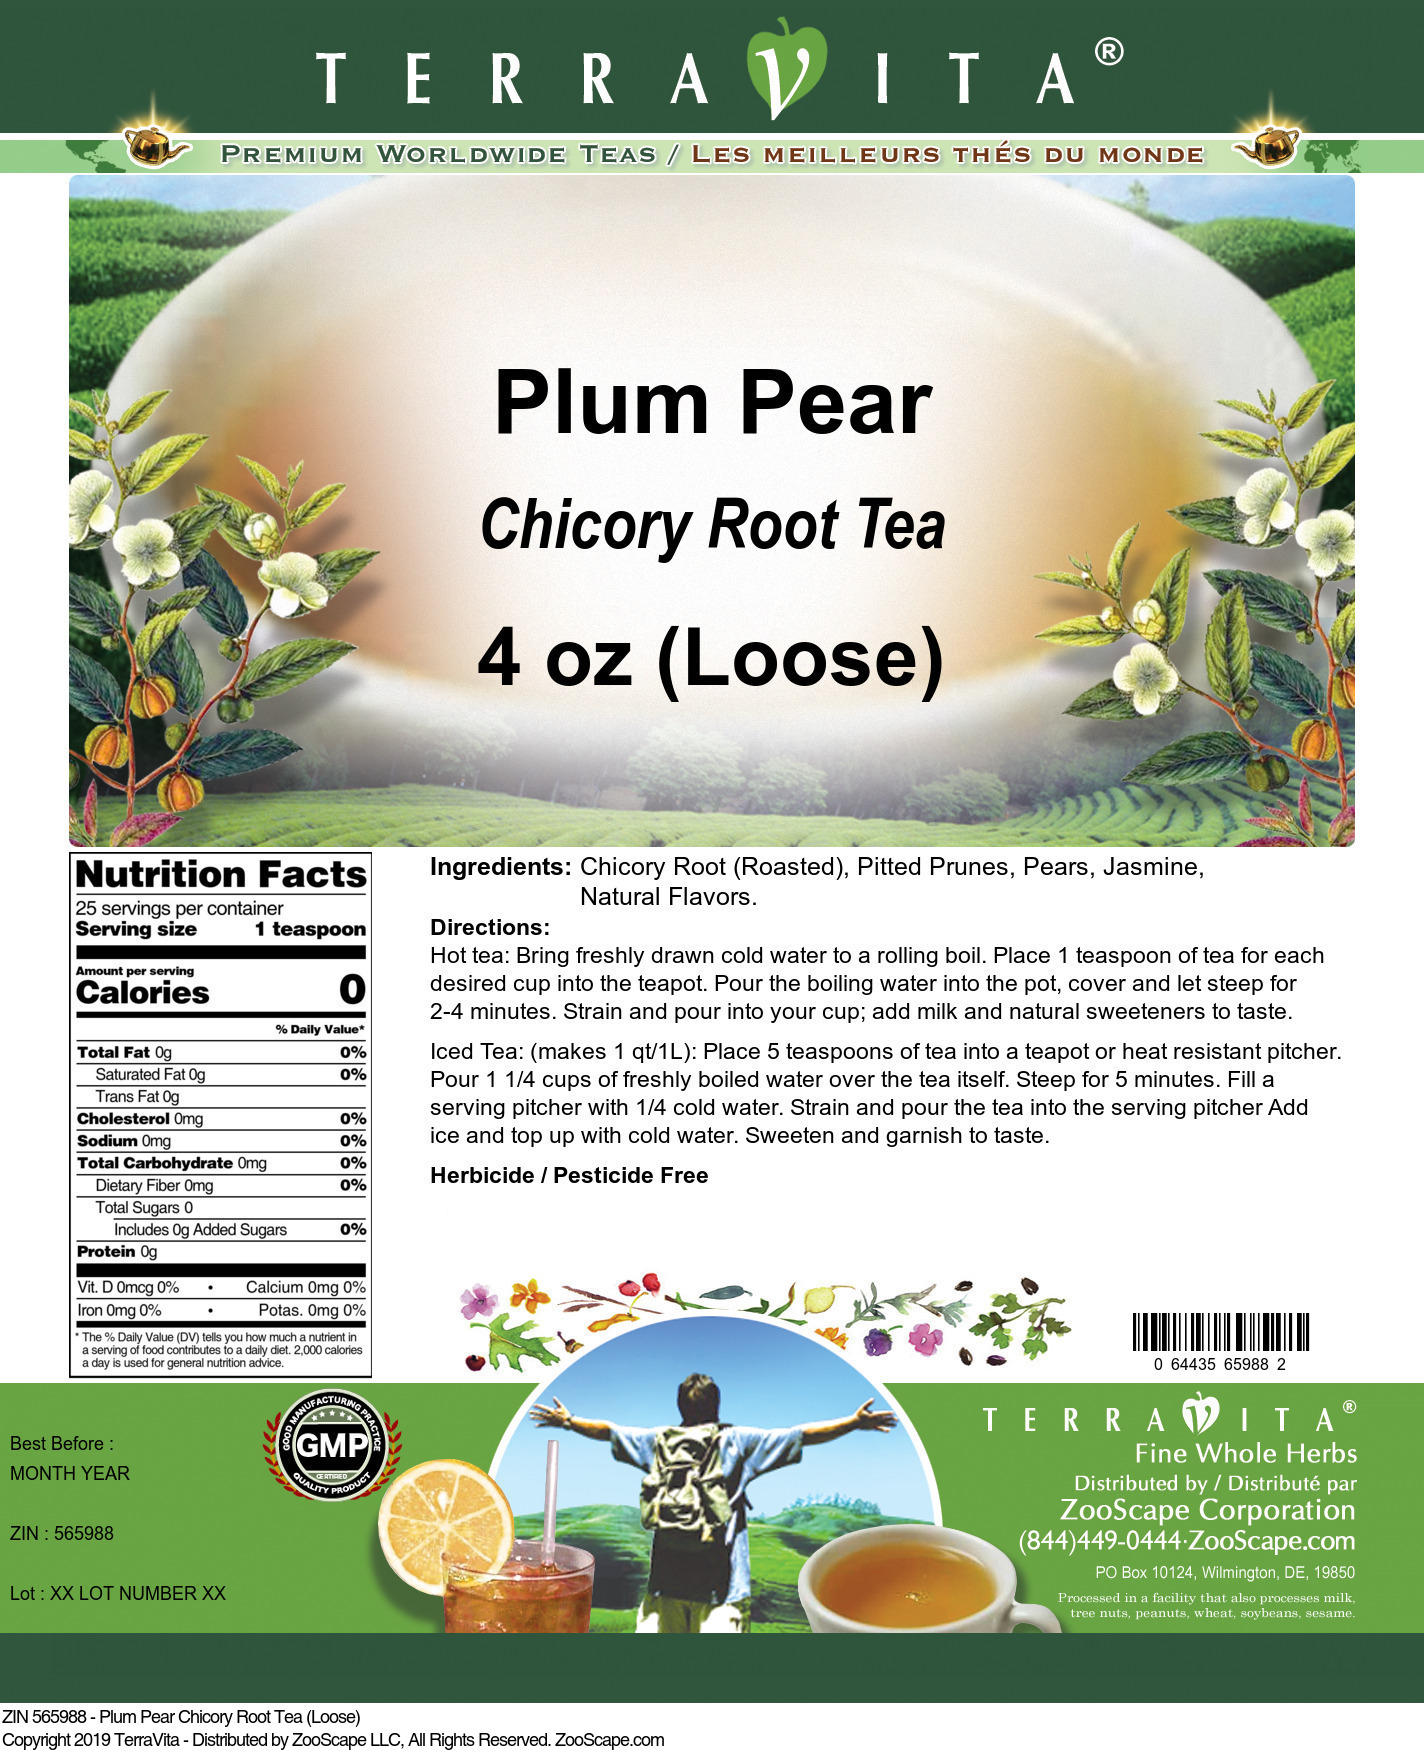 Plum Pear Chicory Root